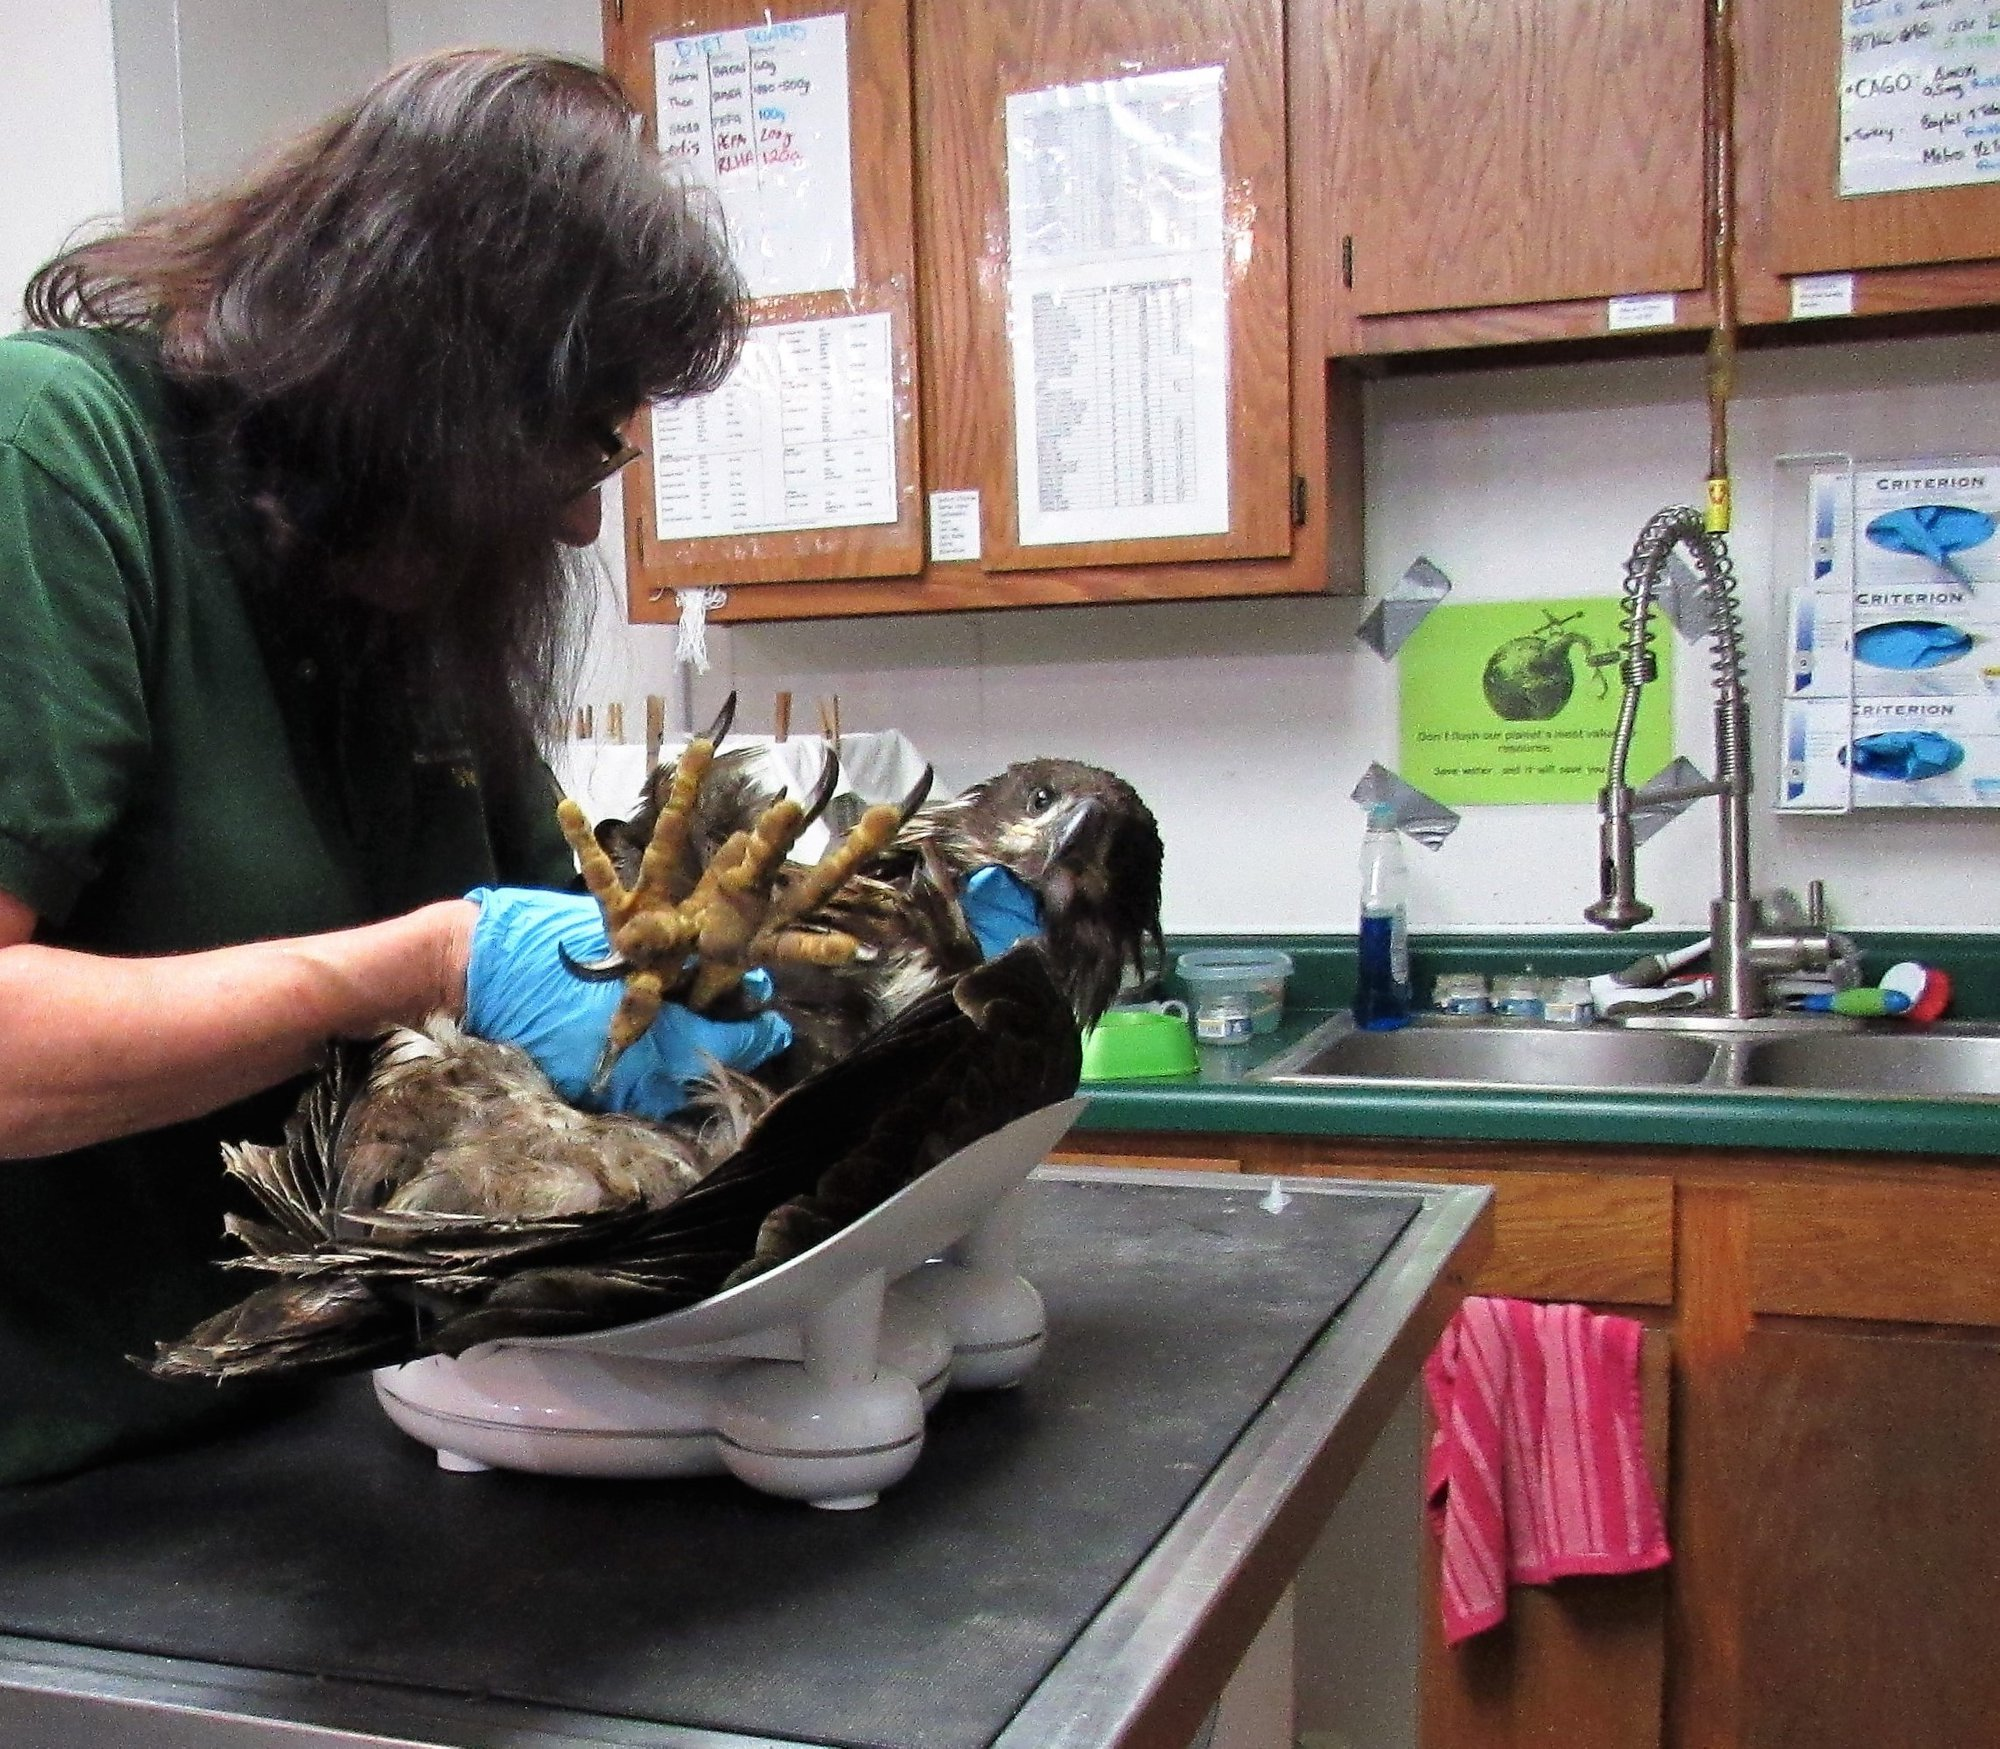 The young eagle only weighed 5.2 lbs which is near starvation.